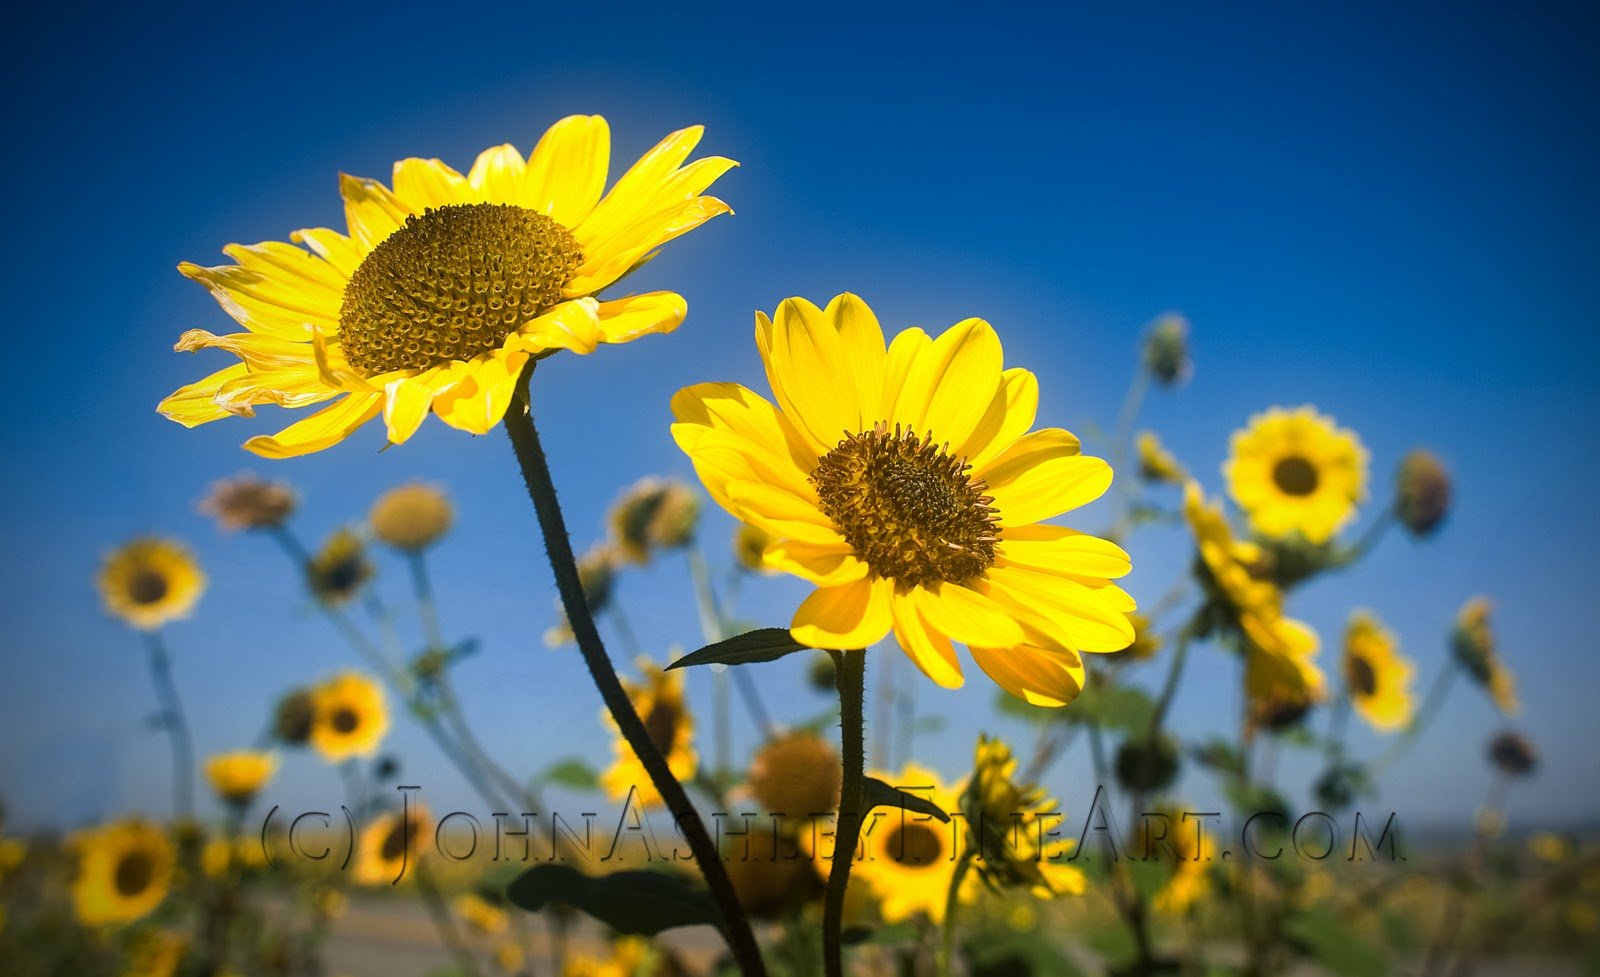 Wild roadside sunflowers nears Billings, MT (c) John Ashley